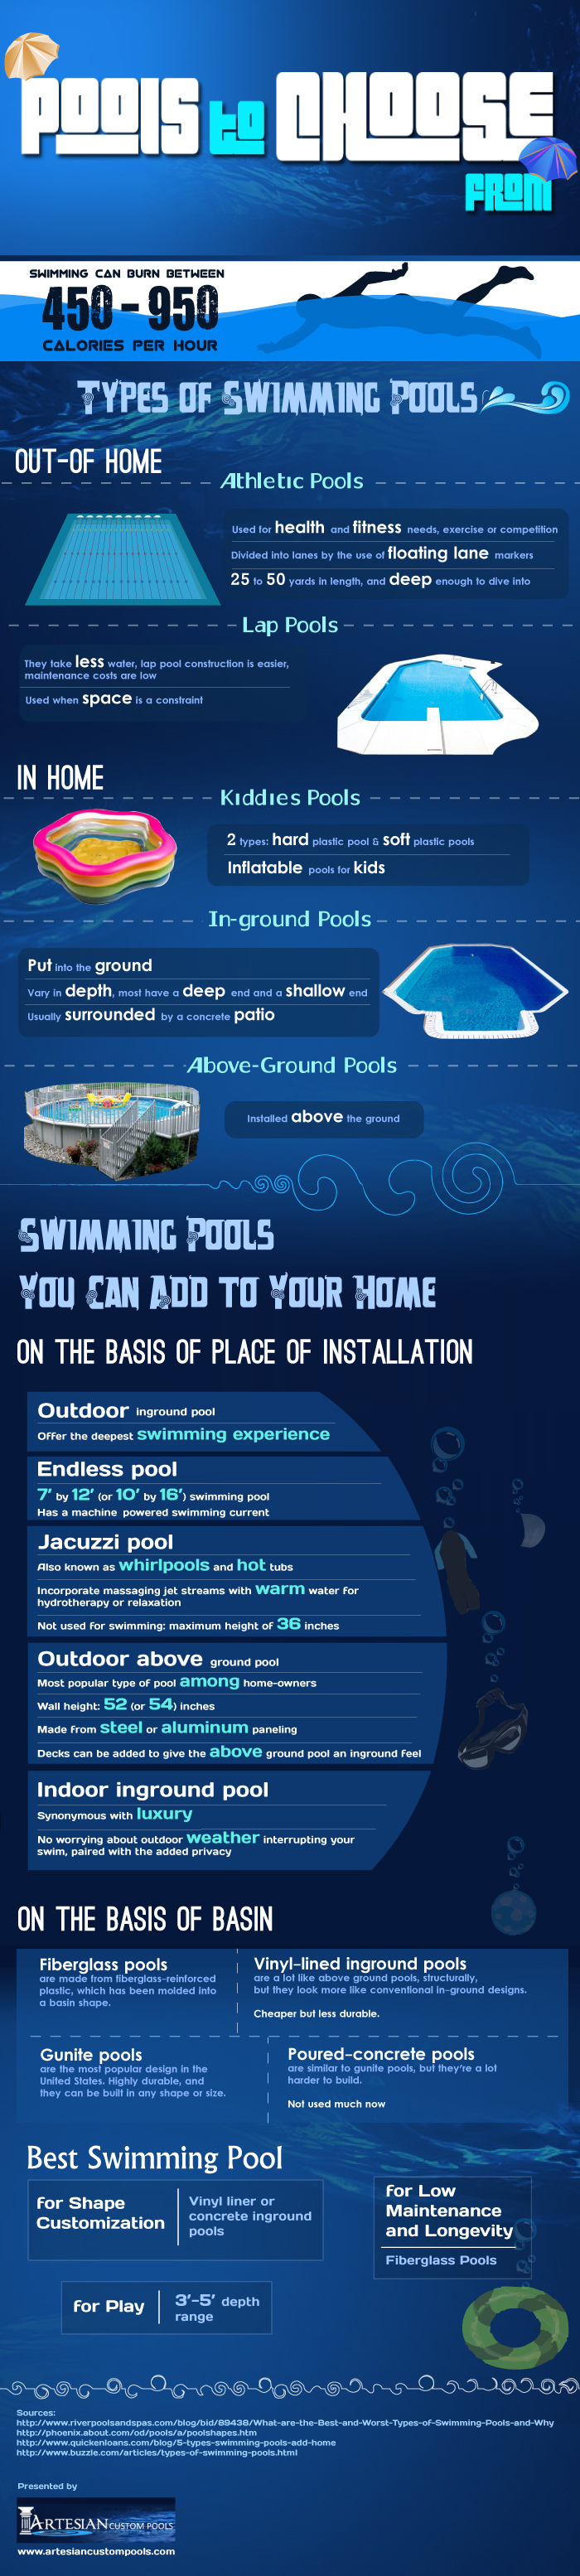 Pools to choose from infographic pools choose for Different types of pools